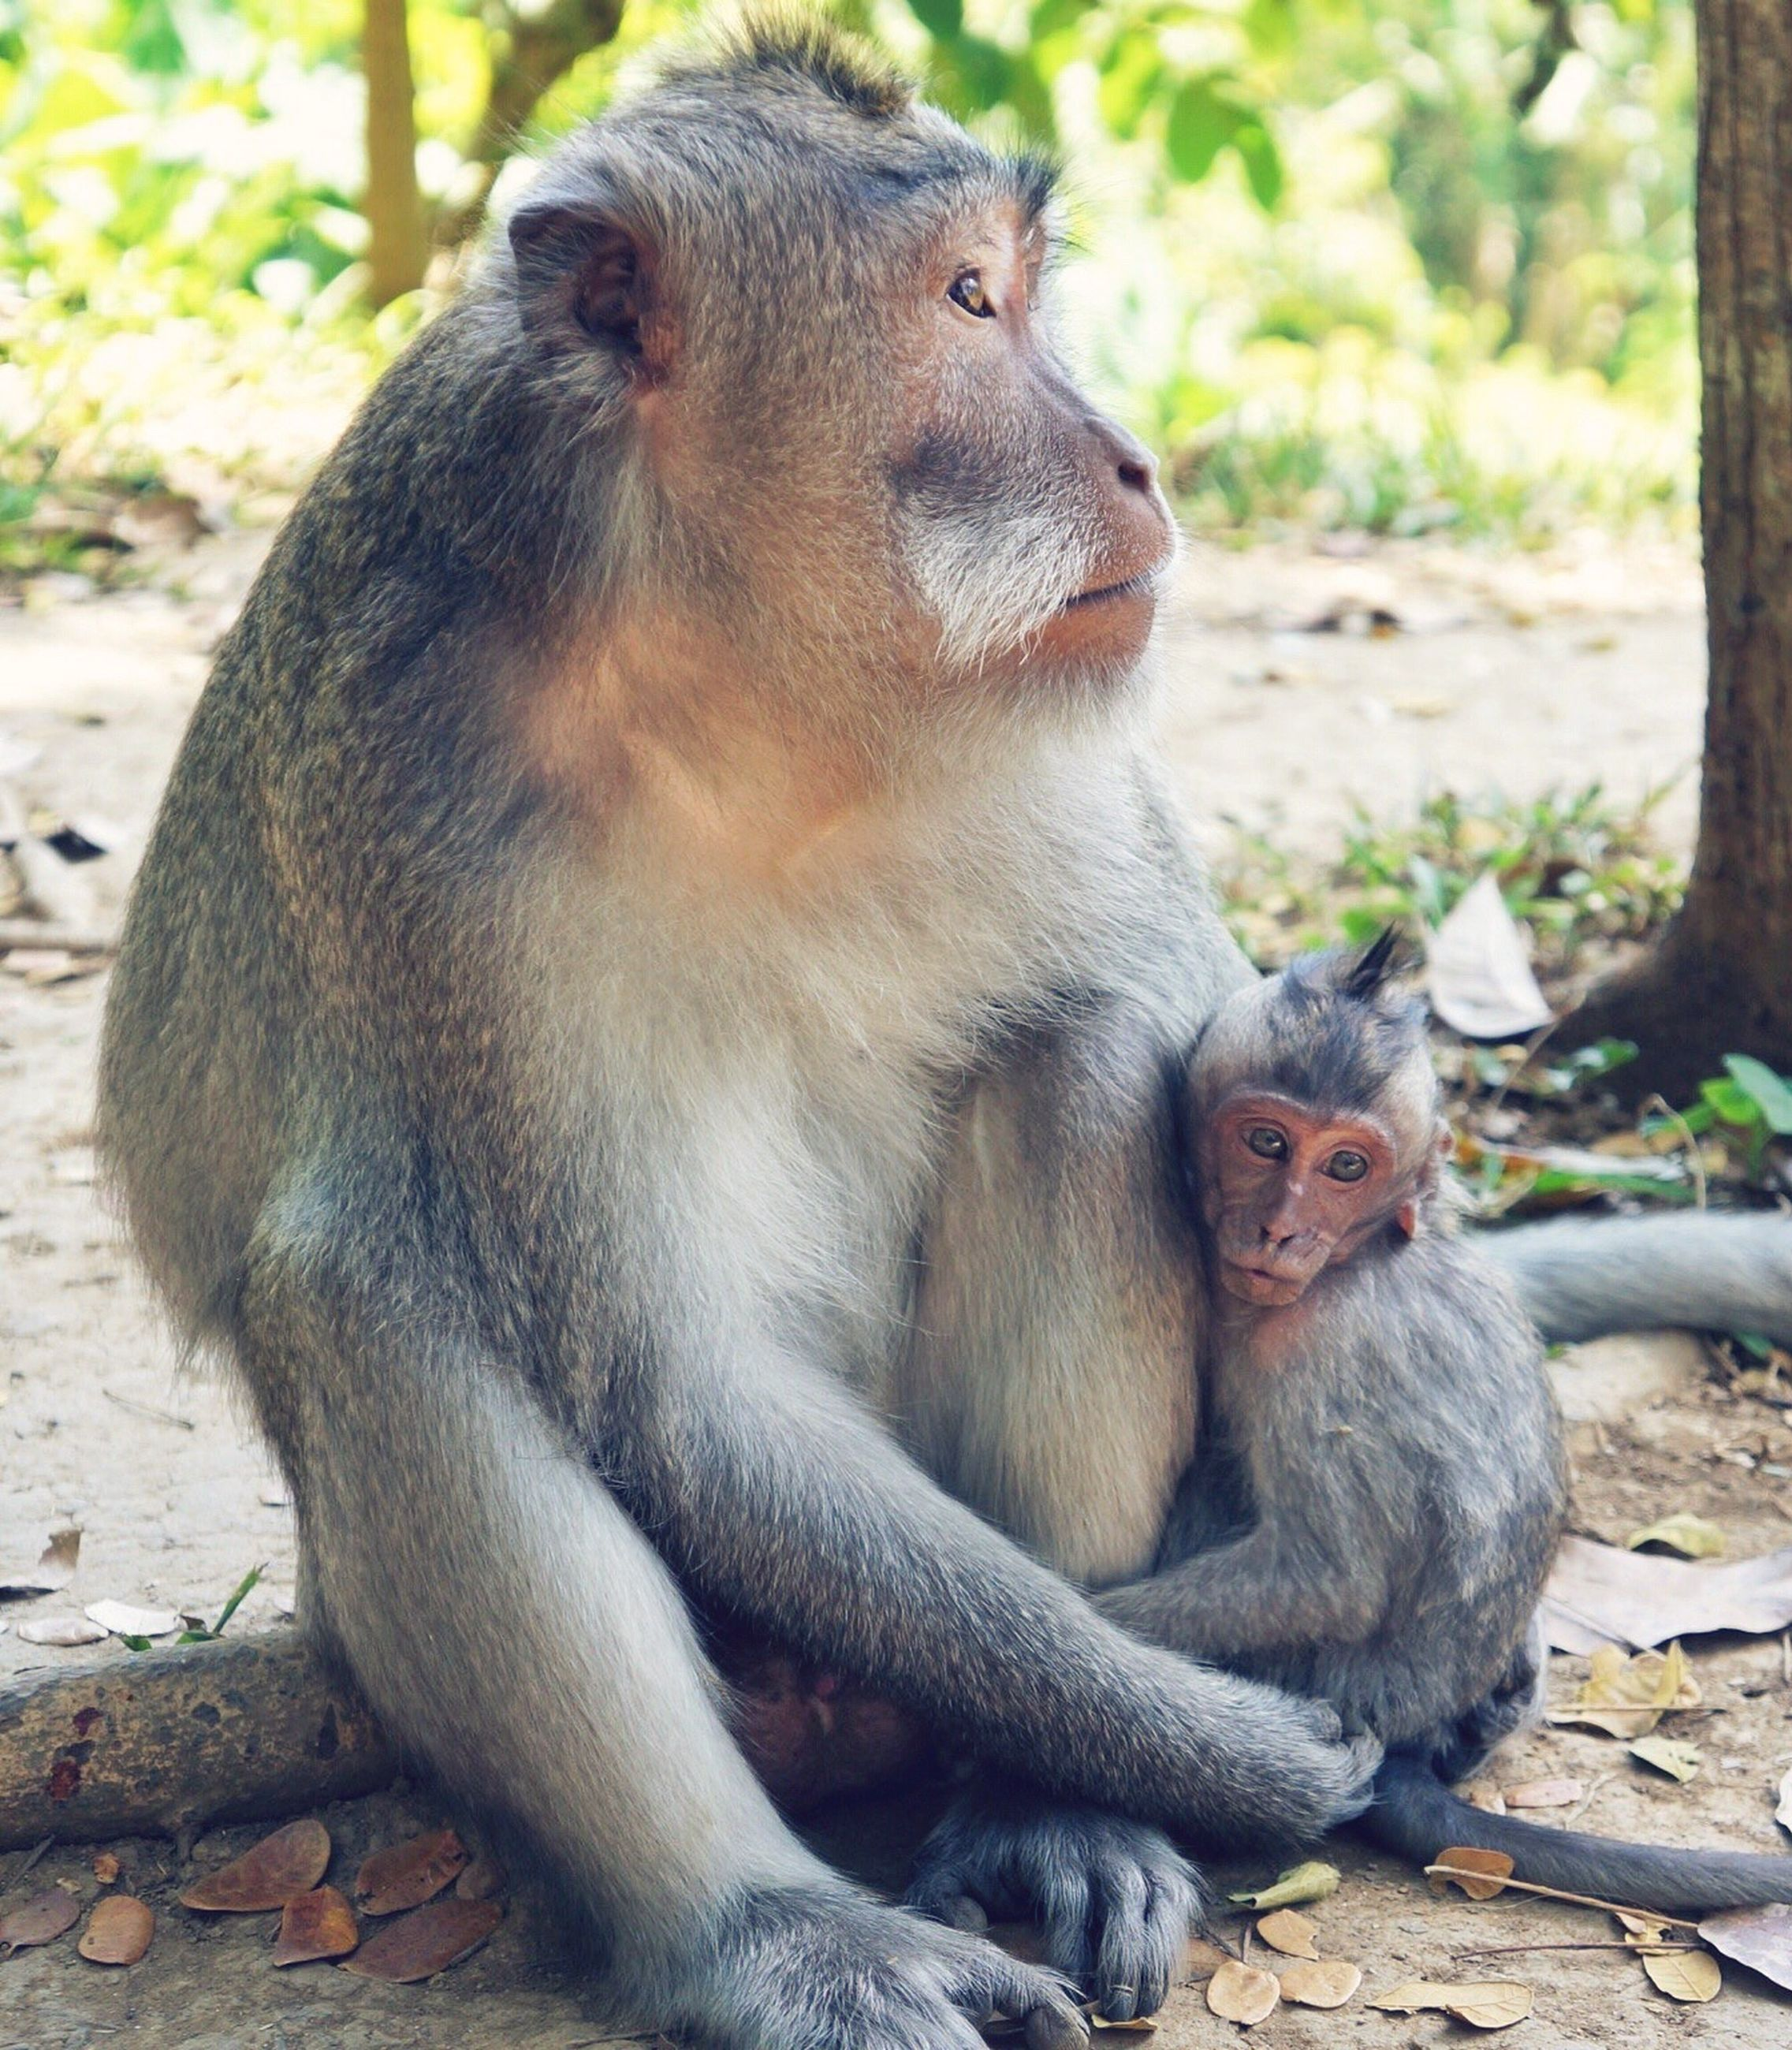 animal themes, animals in the wild, wildlife, monkey, primate, focus on foreground, one animal, mammal, two animals, sitting, zoo, close-up, togetherness, forest, animals in captivity, animal family, young animal, looking away, day